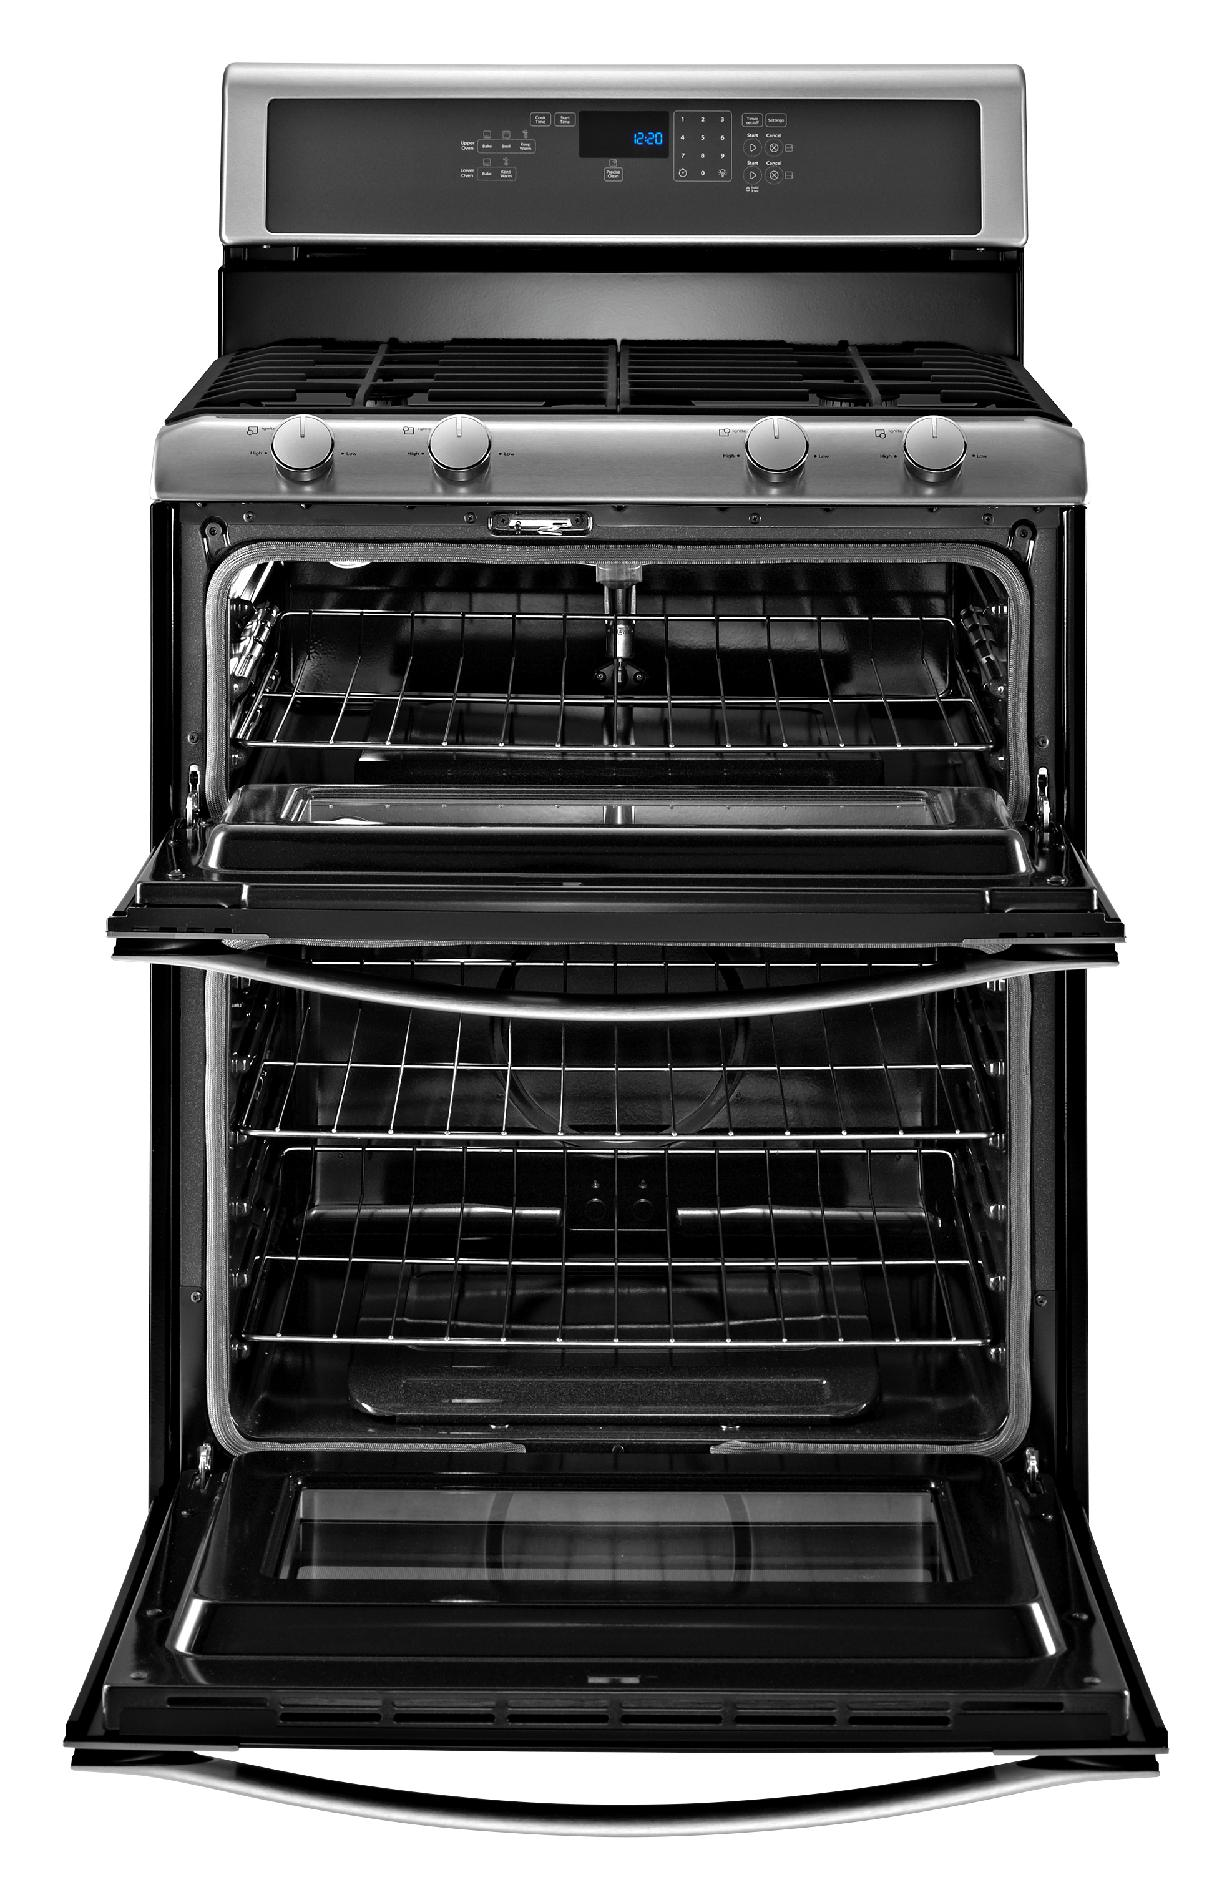 Whirlpool WGG555S0BS 6.0 cu. ft. Gas Range w/ AccuBake™ System - Stainless Steel